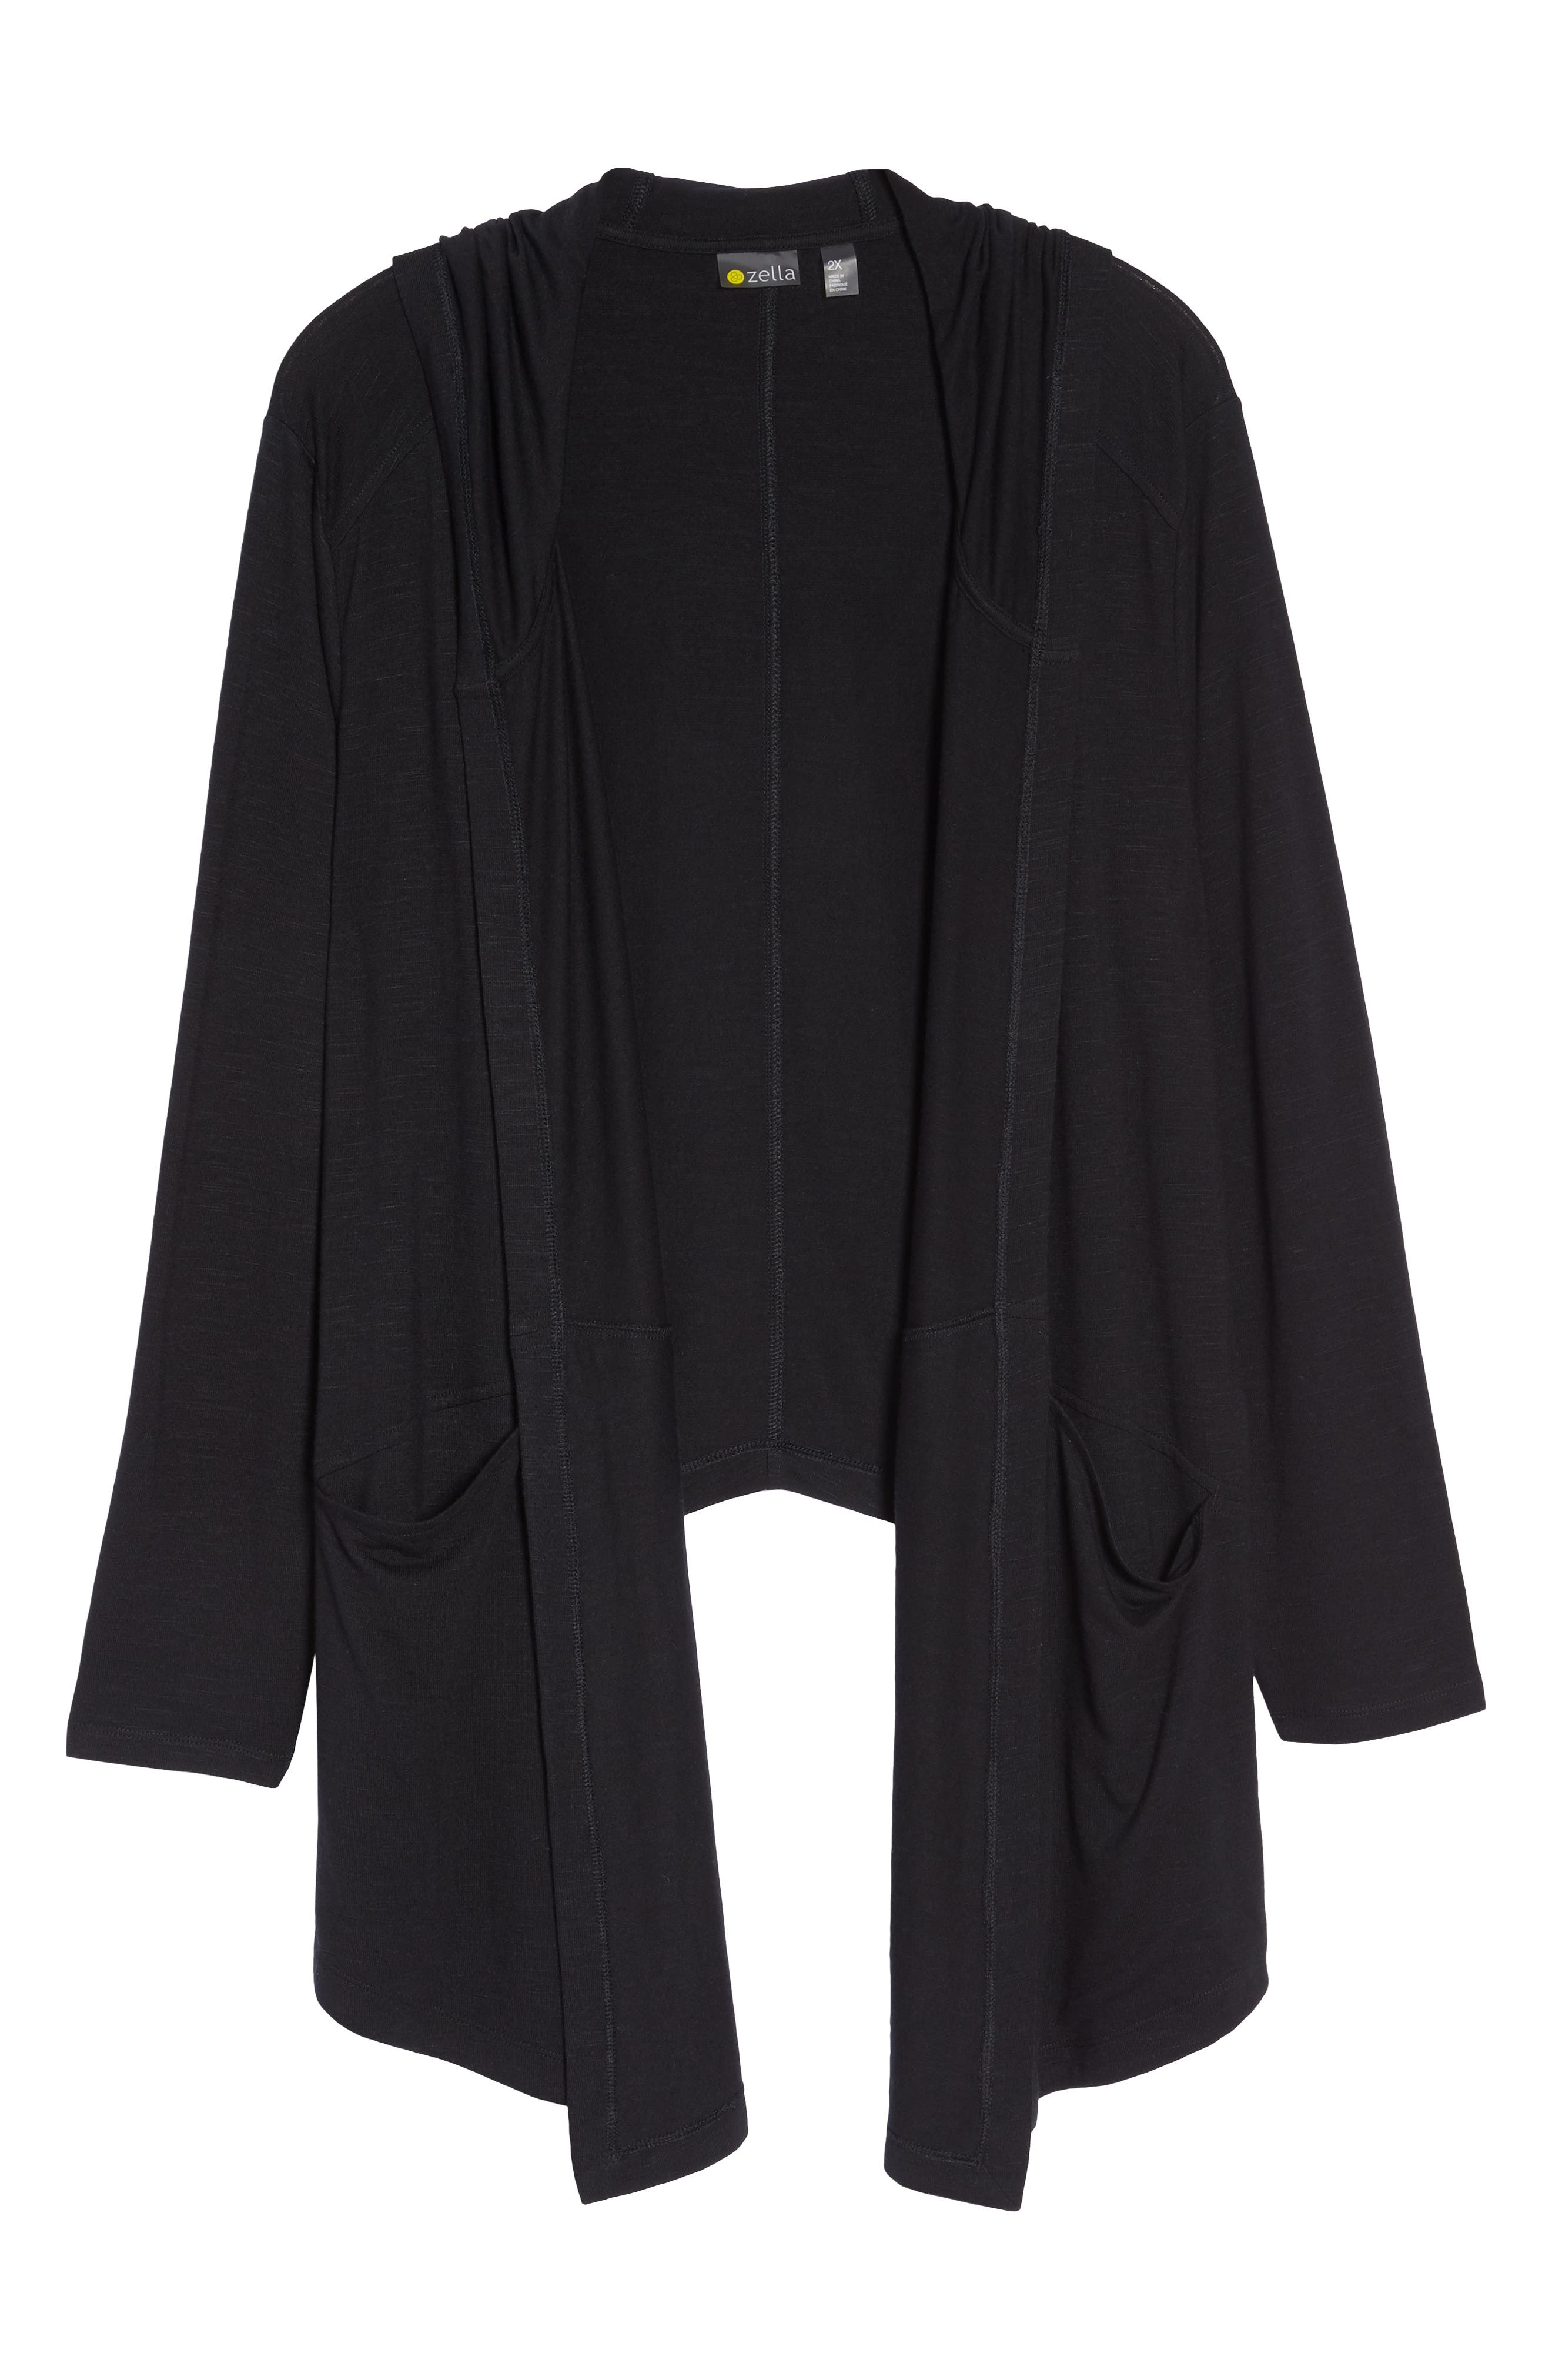 After Class Hooded Cardigan,                             Alternate thumbnail 7, color,                             BLACK